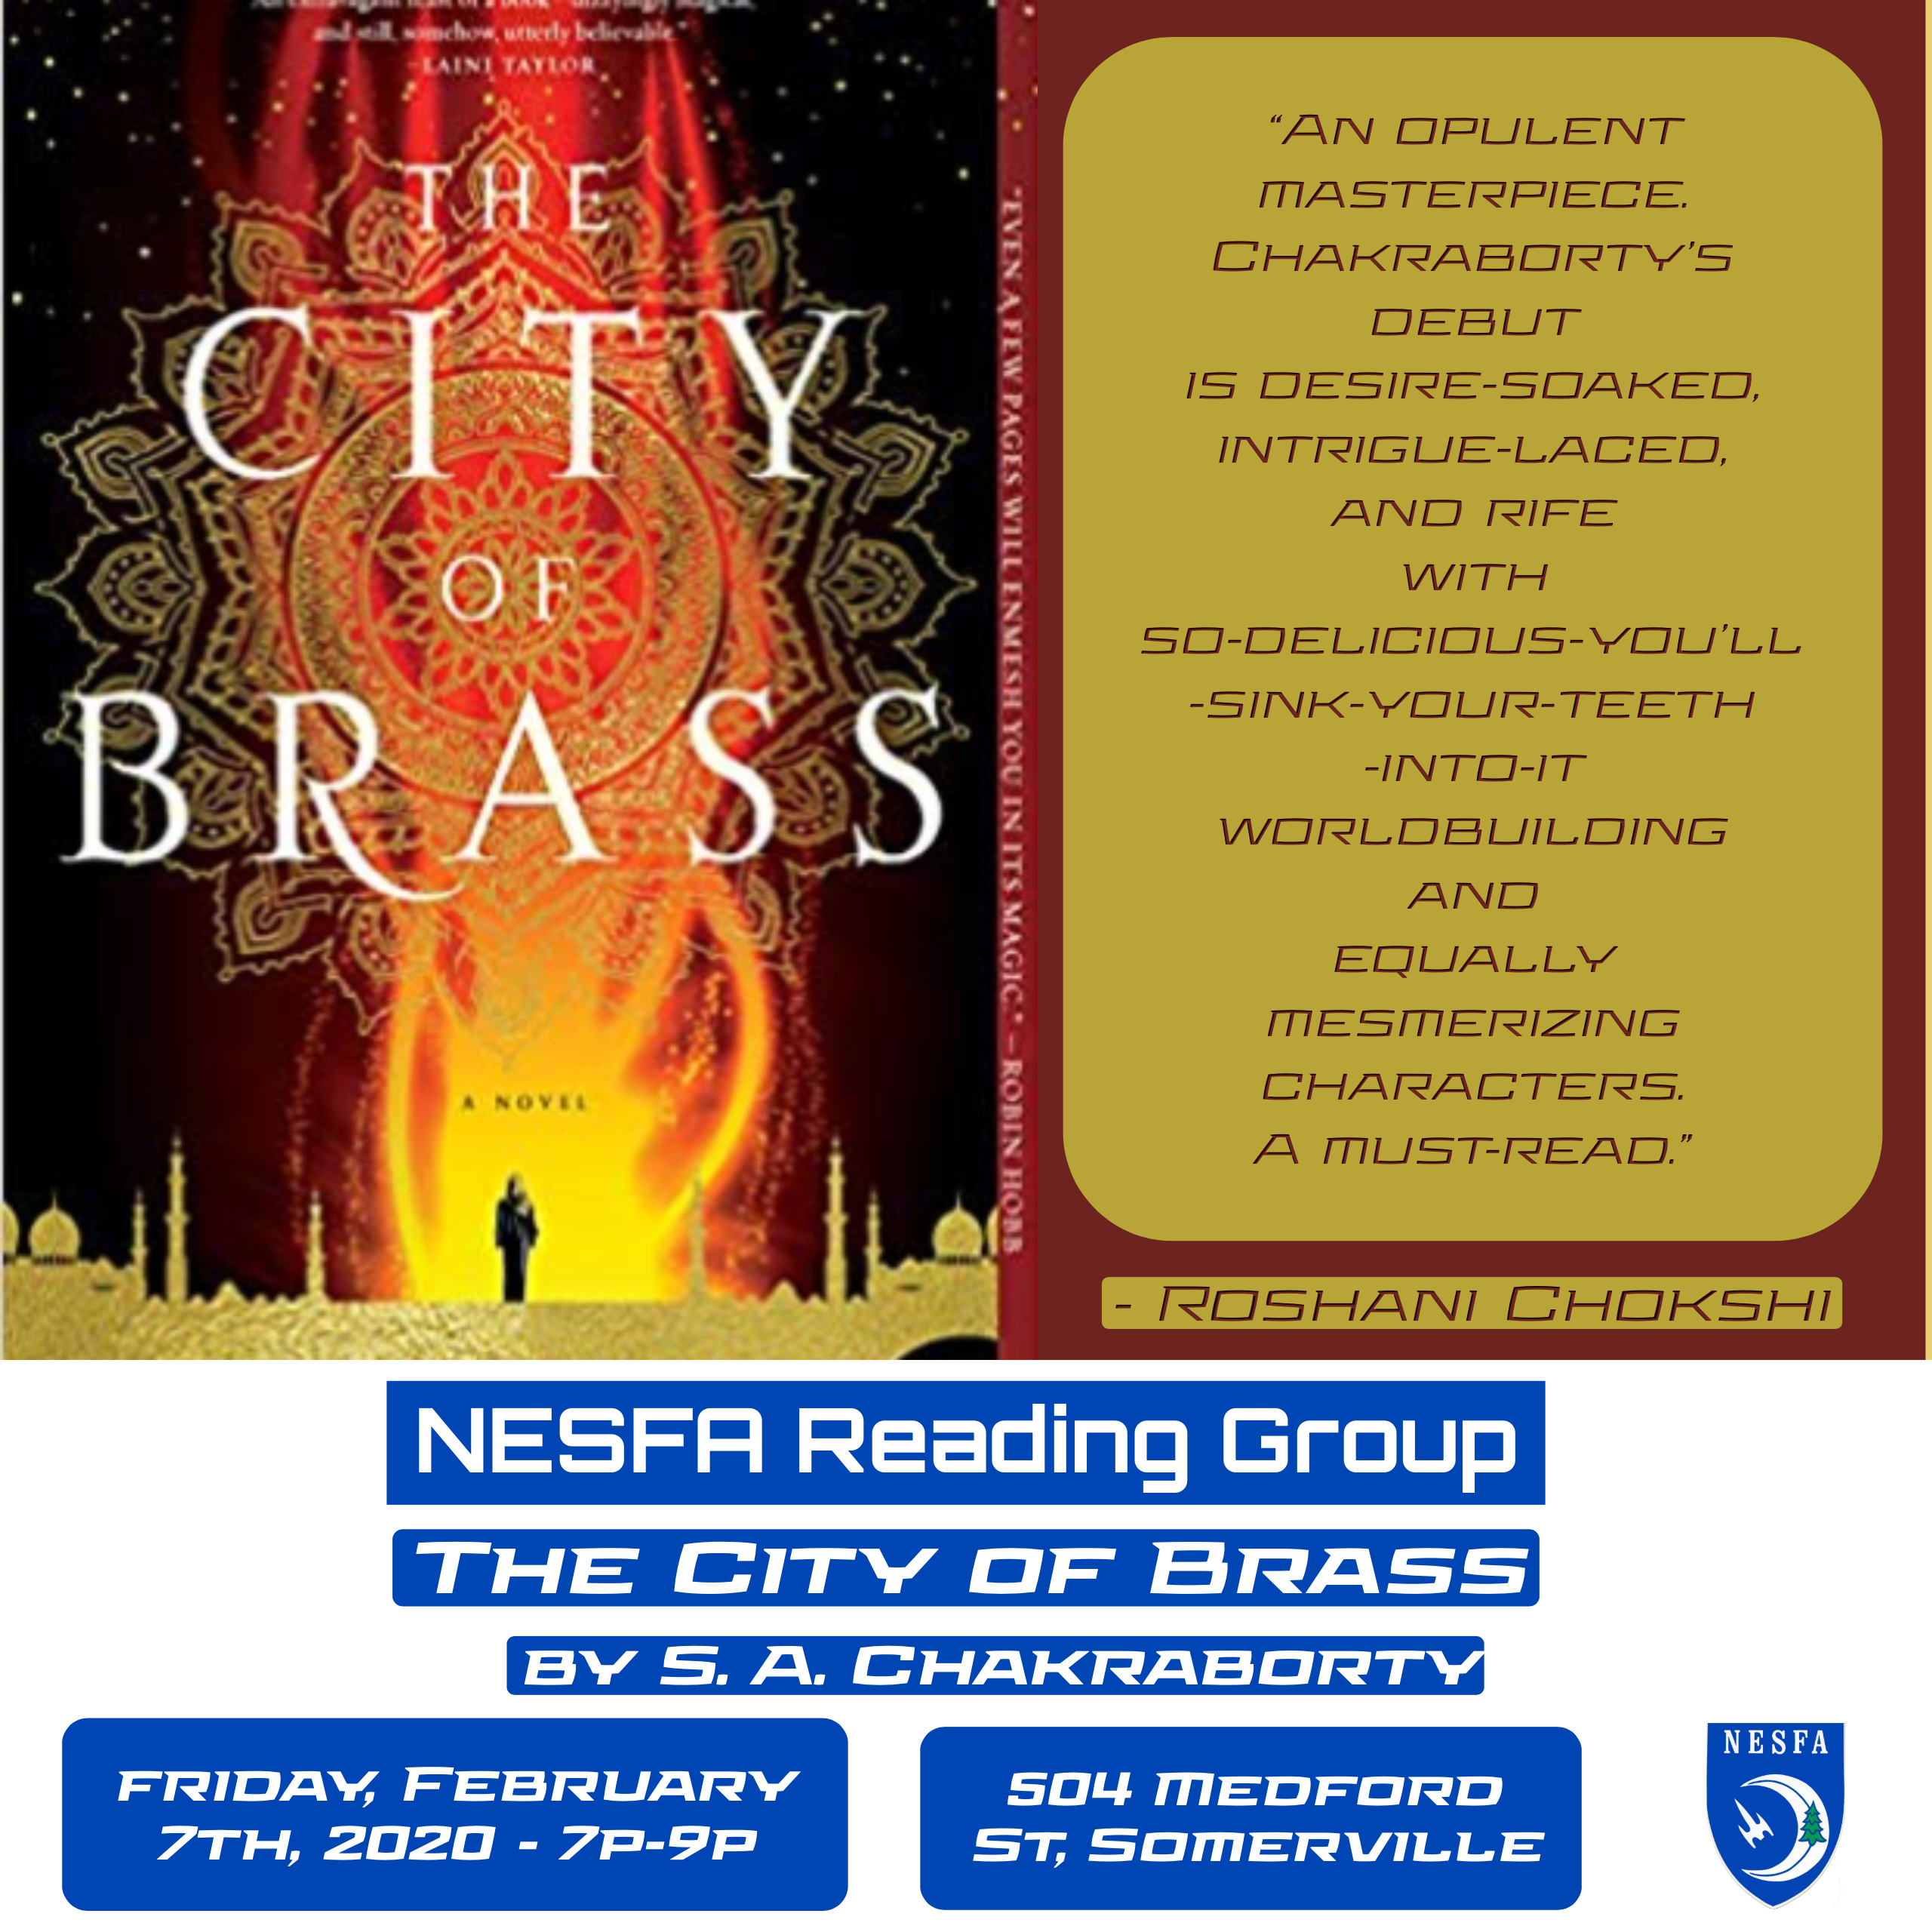 The City of Brass by S. A. Chakraborty – February Book Discussion